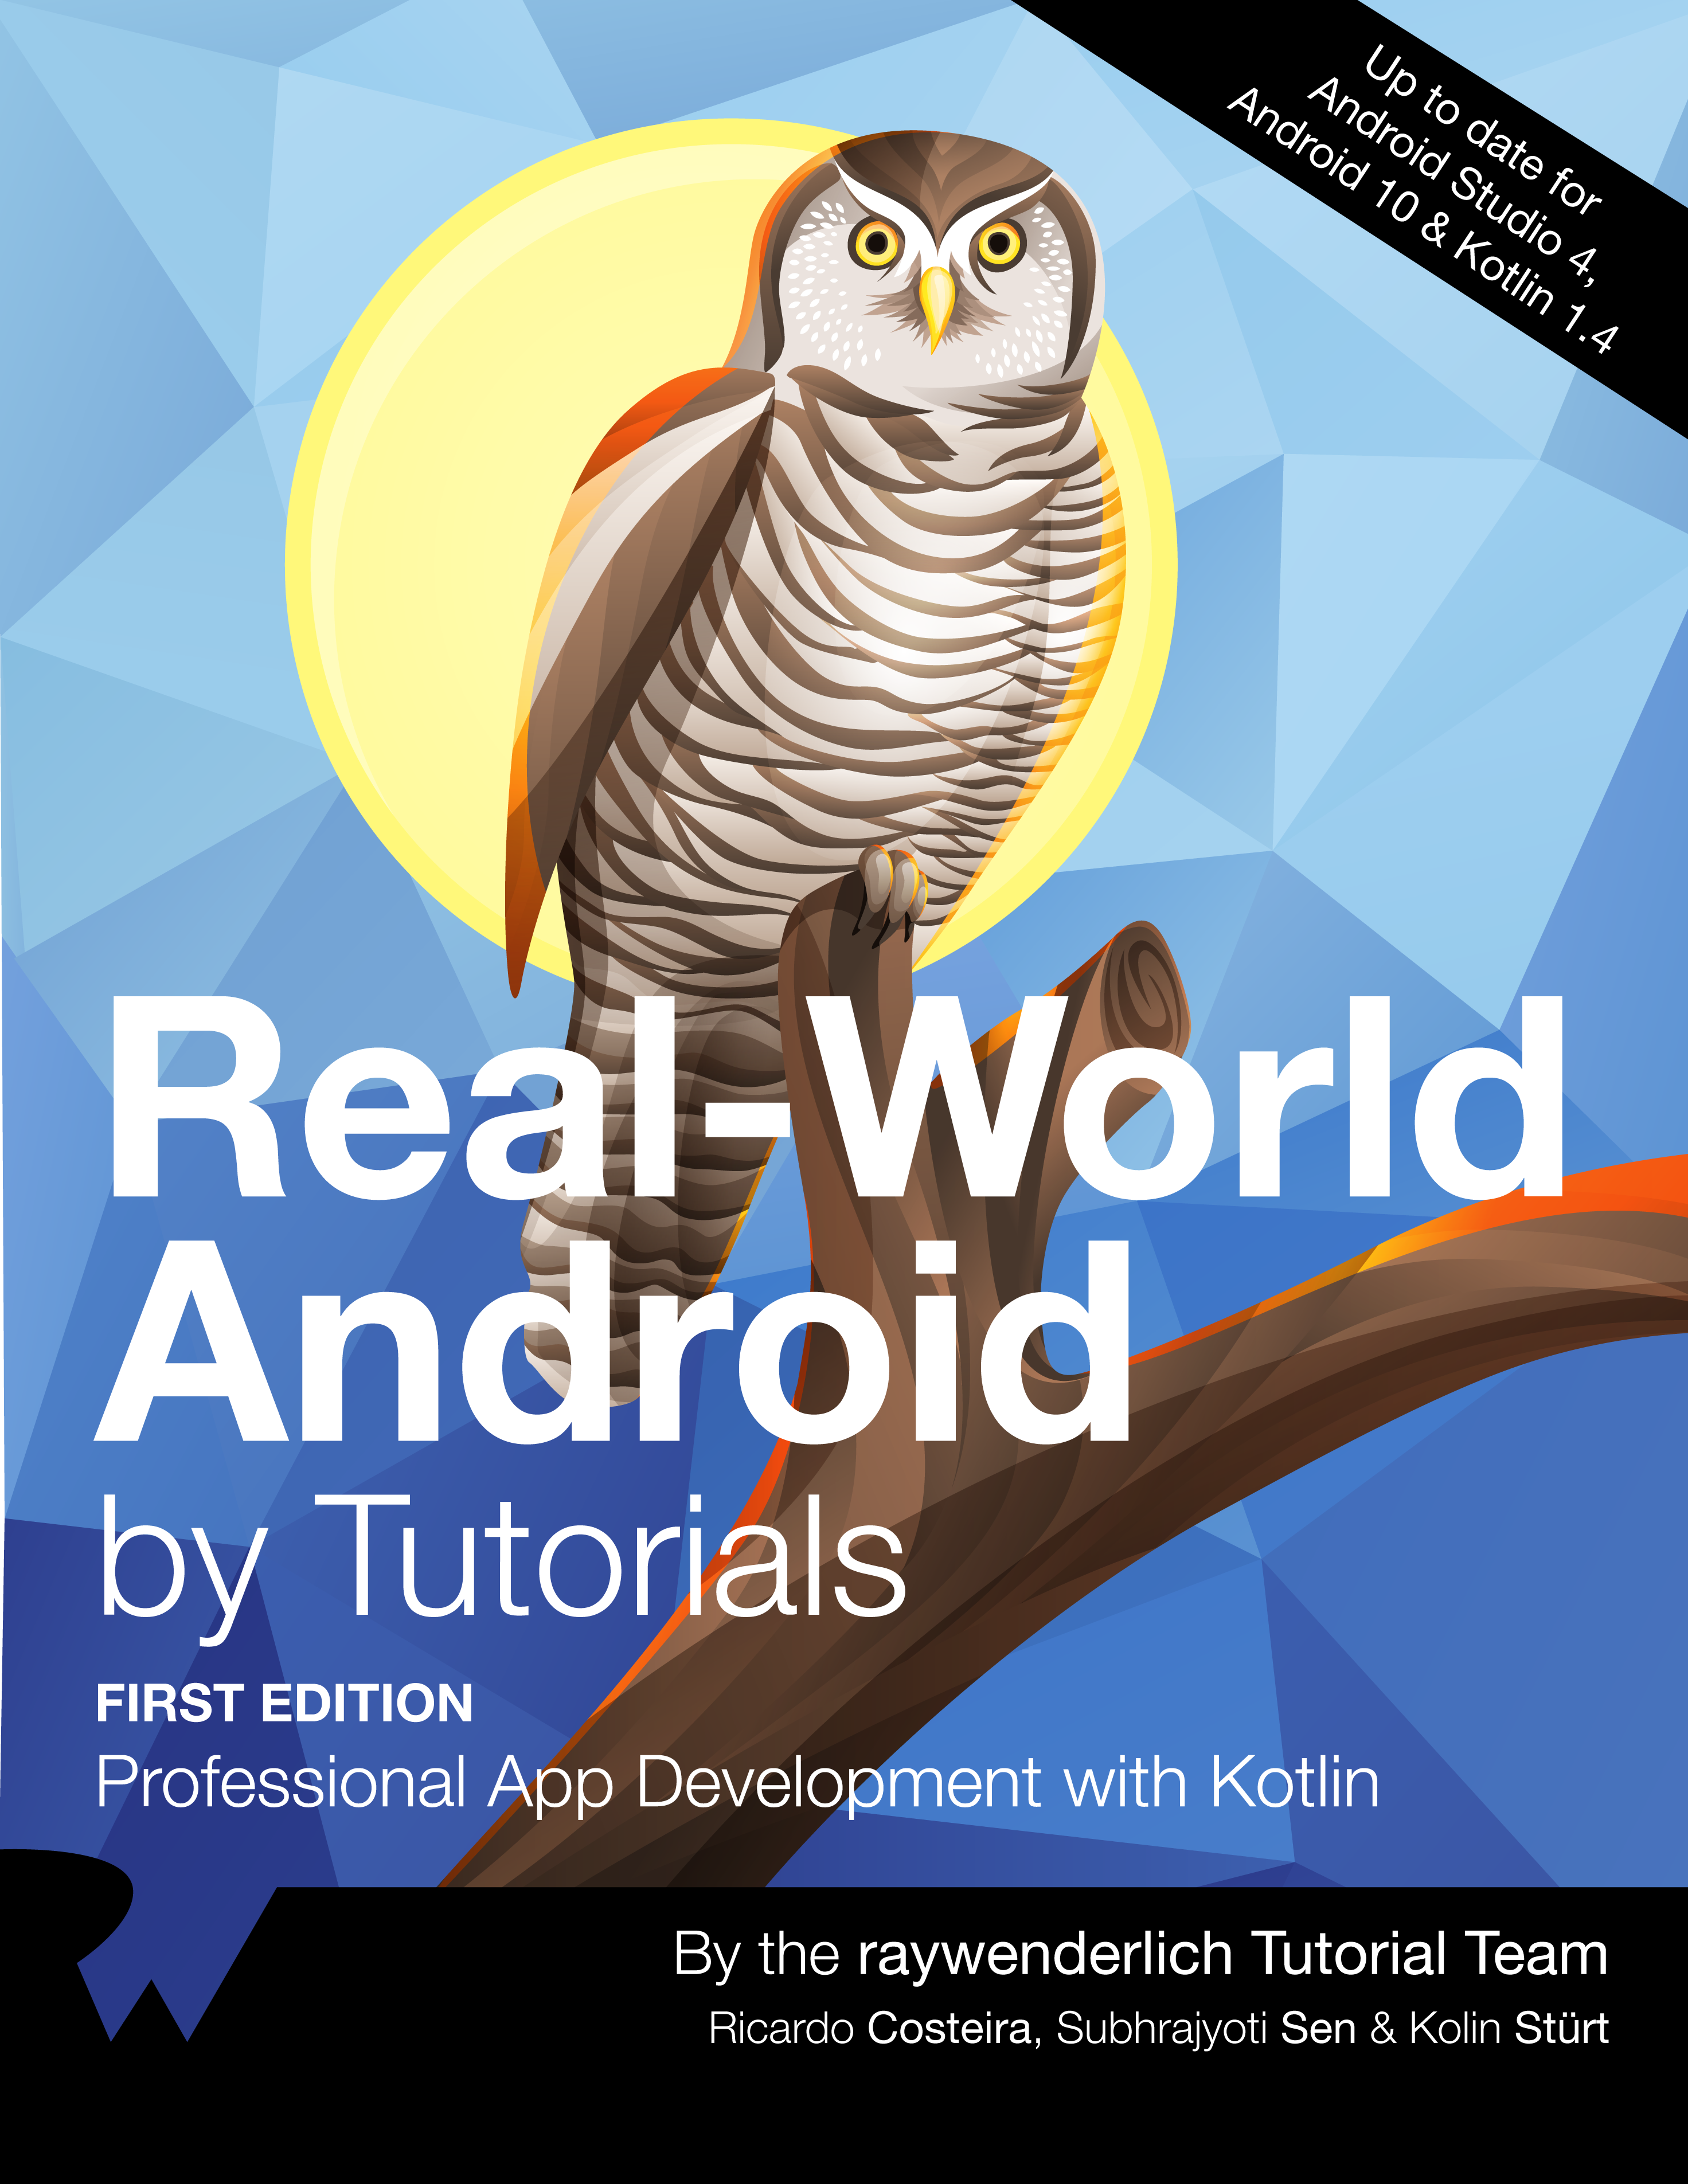 Real-World Android by Tutorials